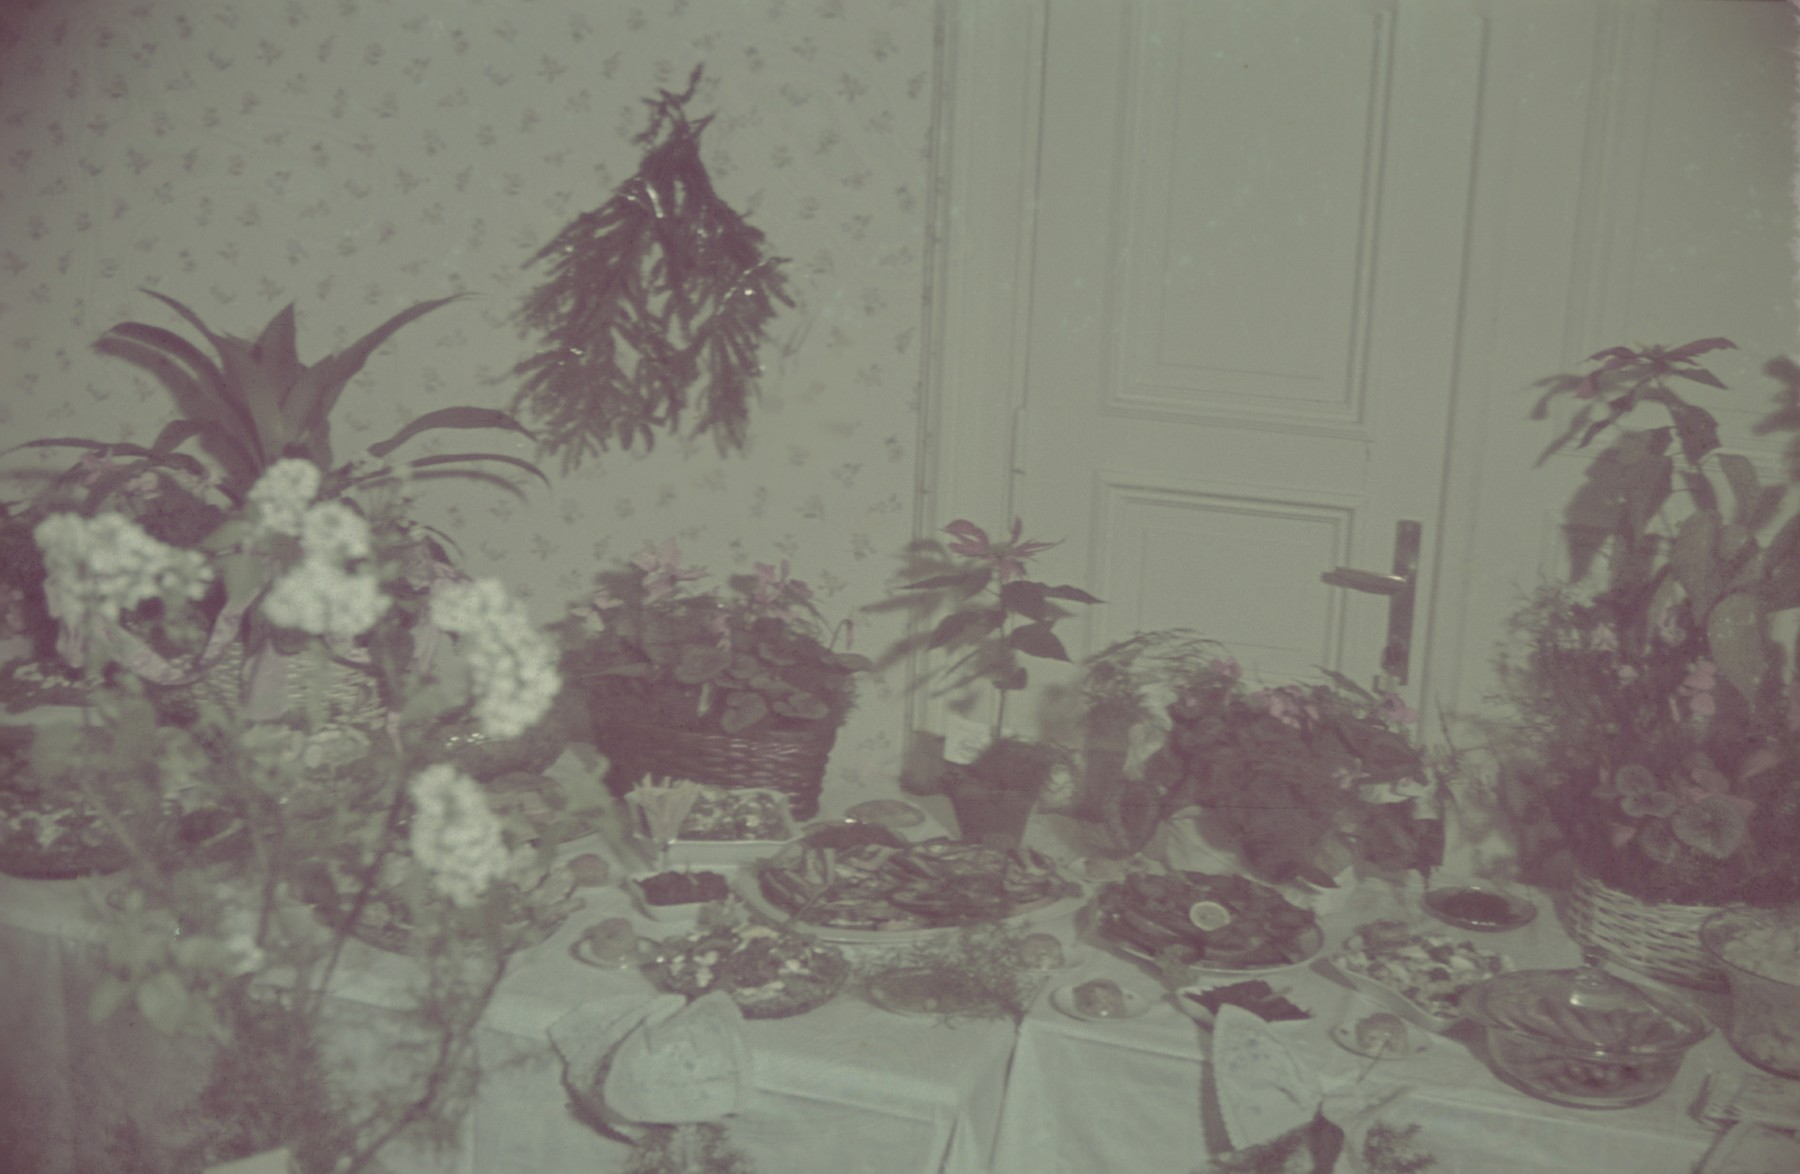 A table decorated with plants and food for a celebration [probably of the birthday of Hans Biebow, the German head of the Lodz ghetto administration].